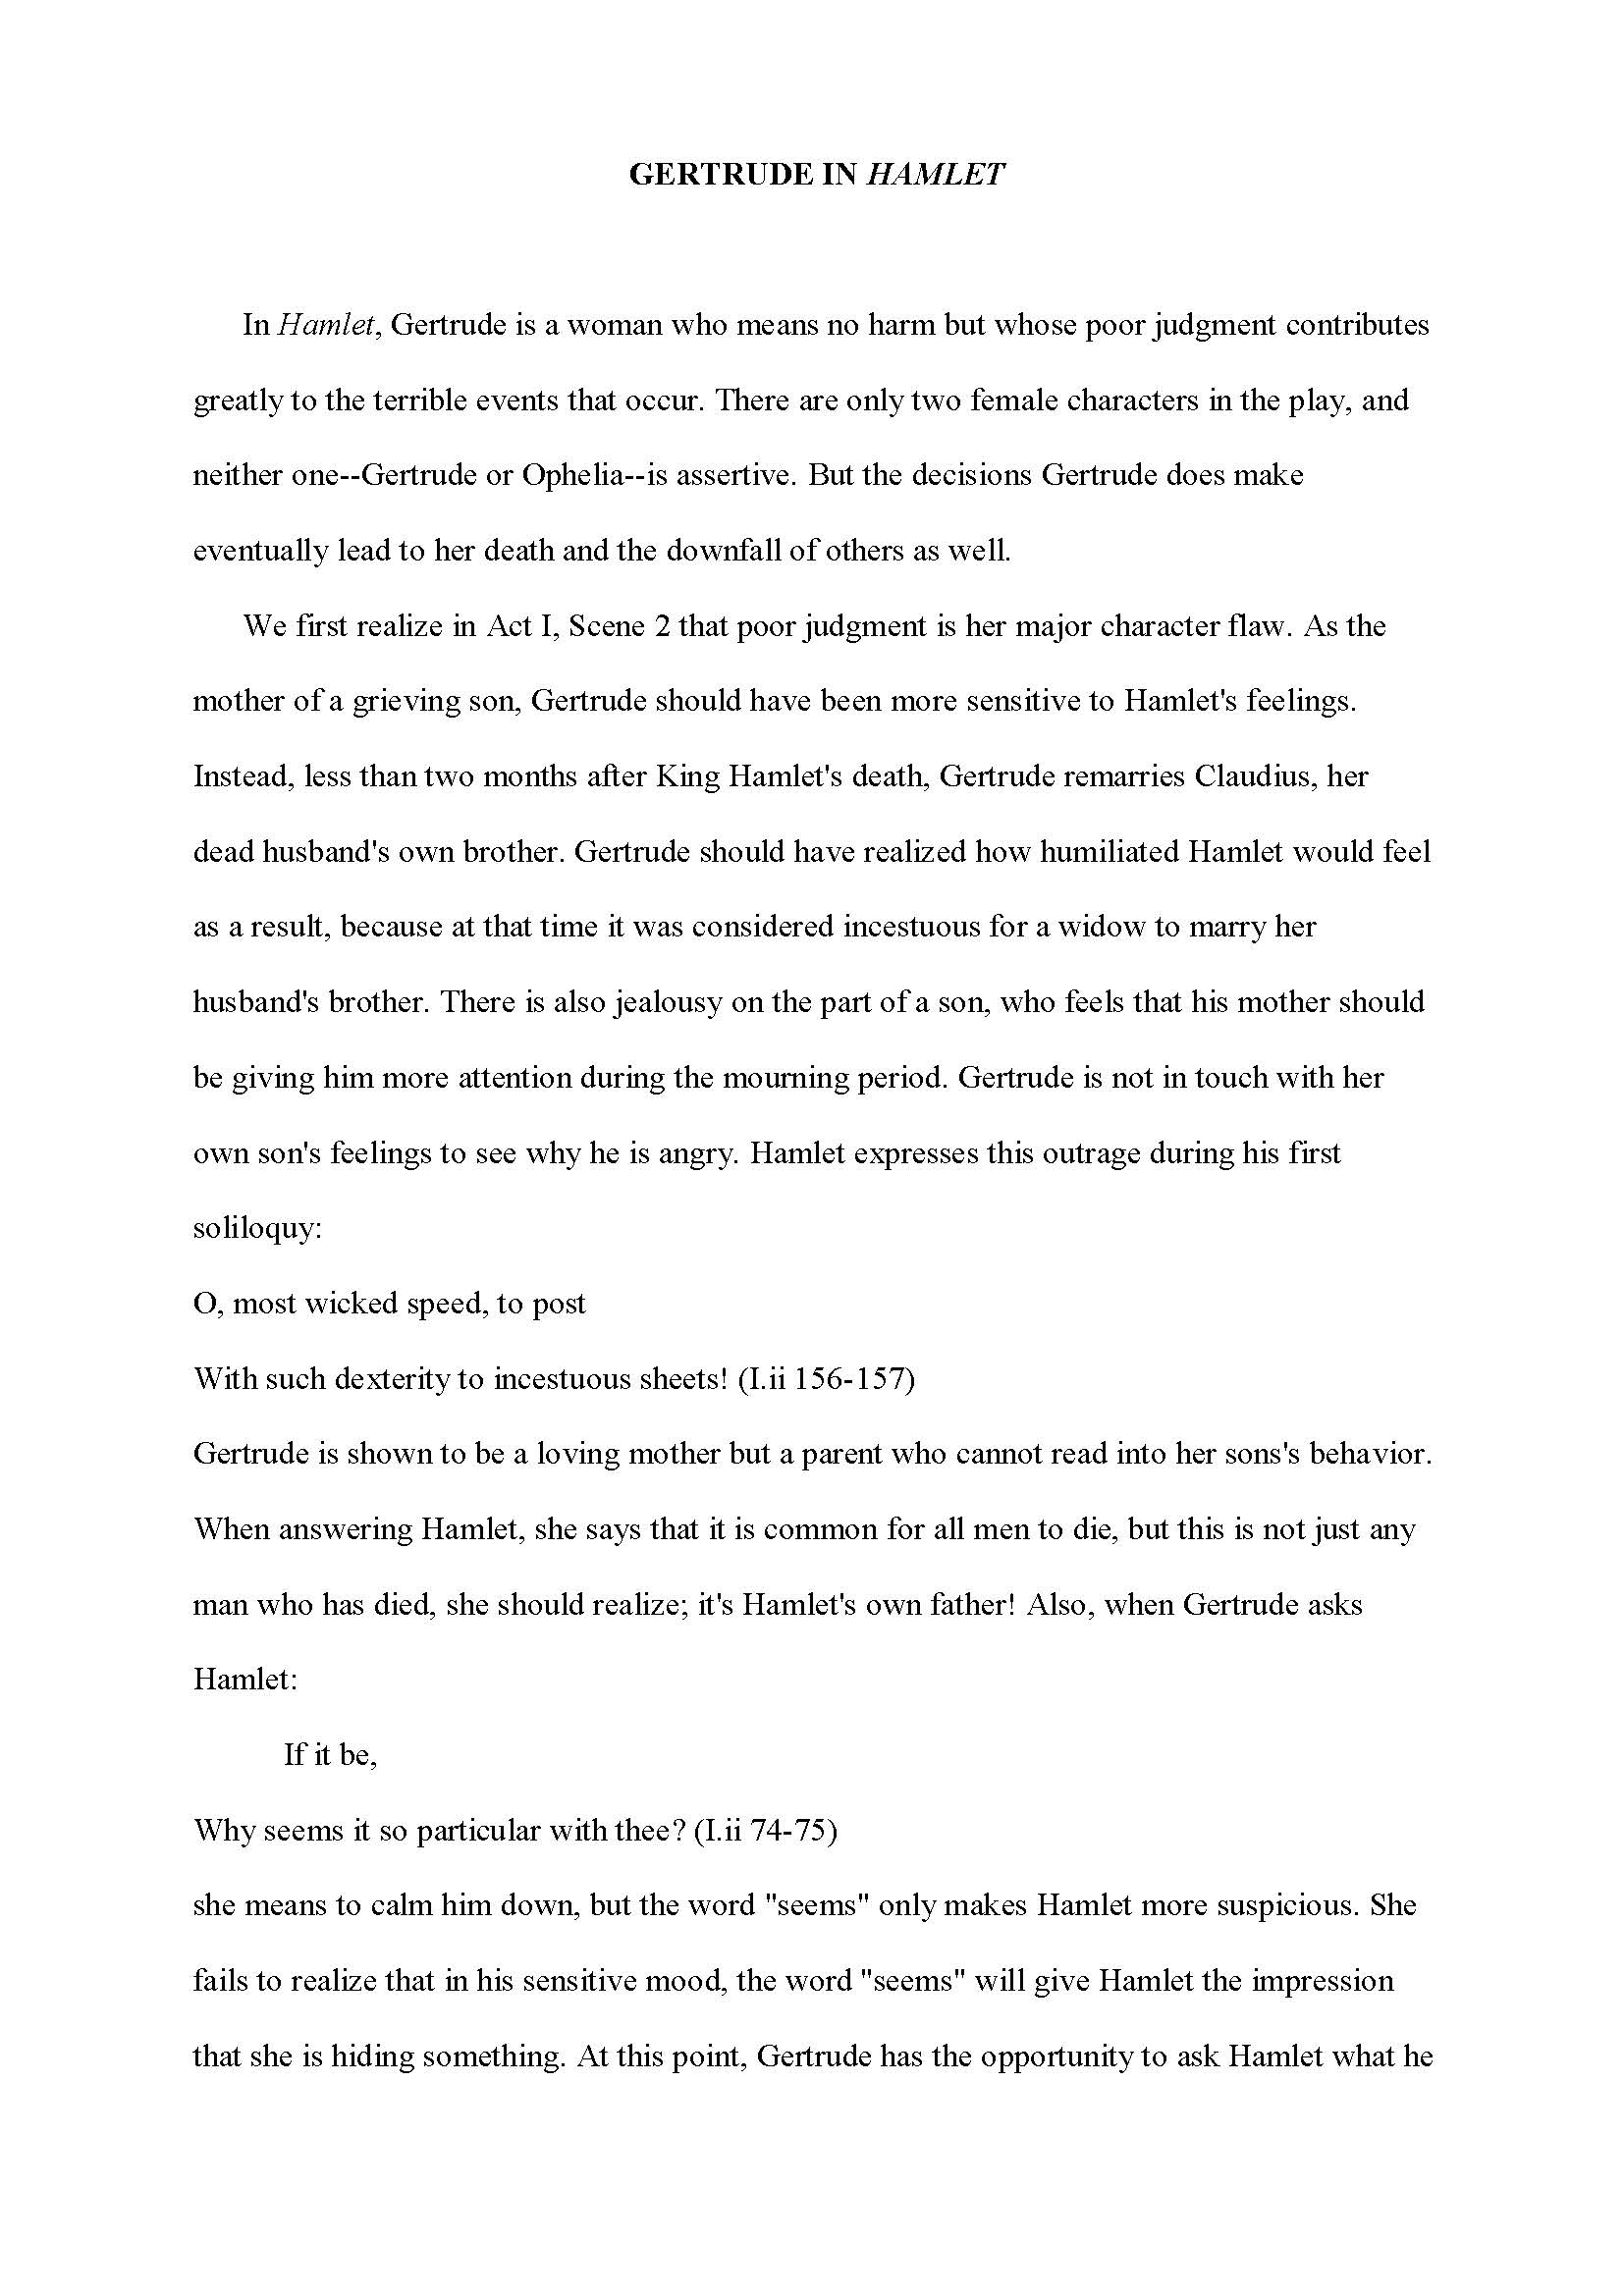 013 Analysis Essay Sample Example How To Begin Amazing A Critical Review Structure Response Full